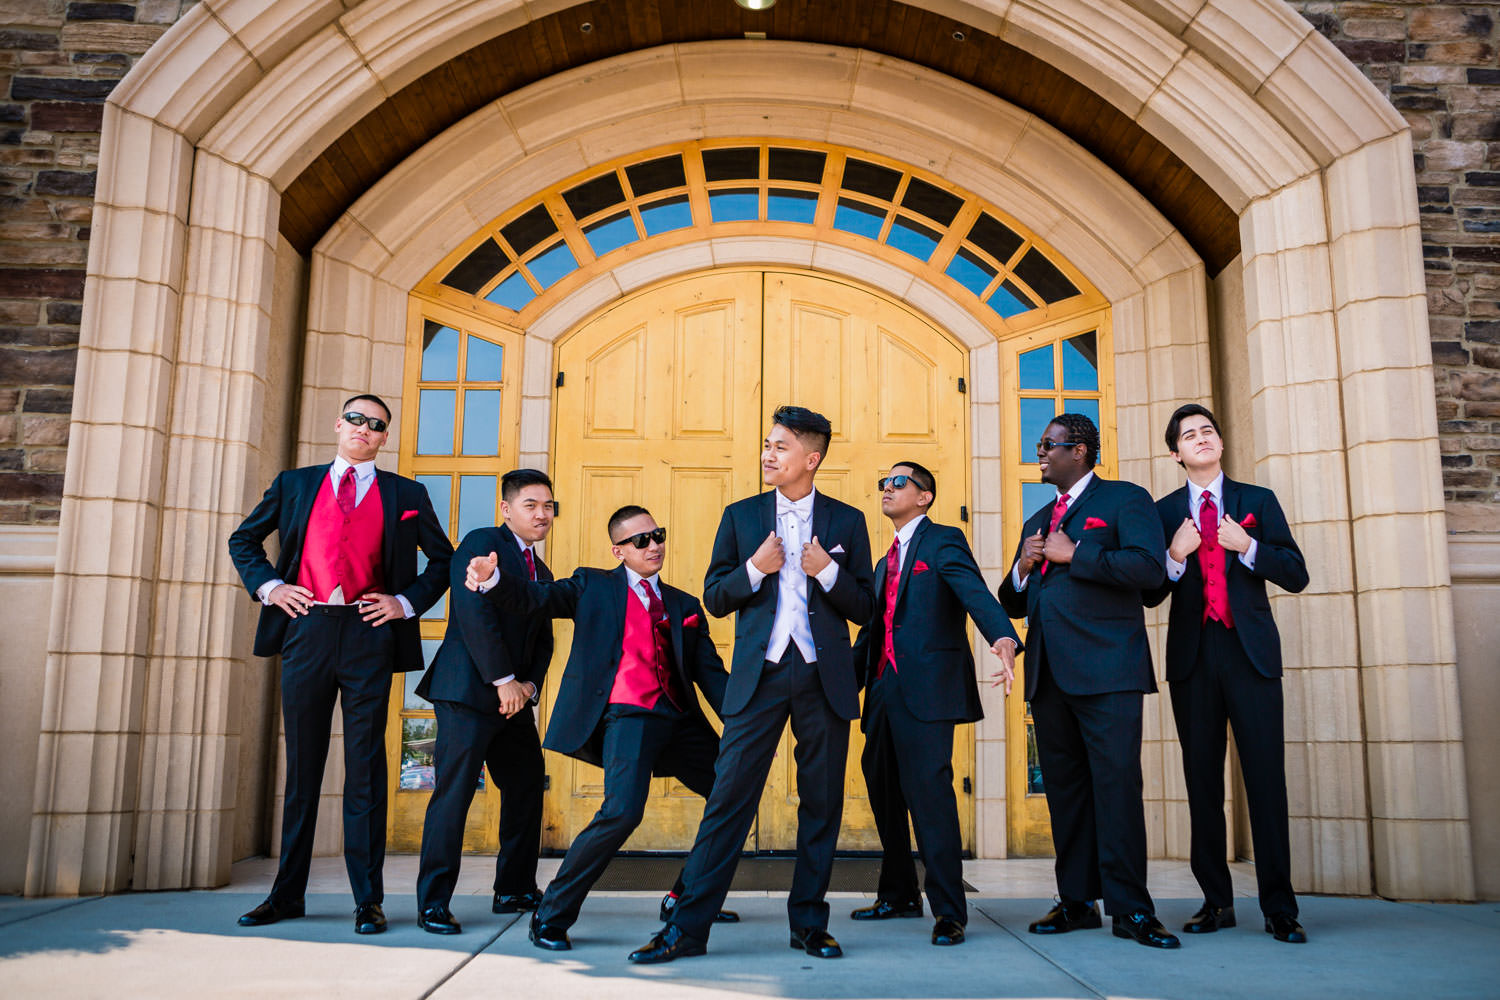 Blackstone Country Club wedding by JMGant Photography. Groomsmen hanging out!